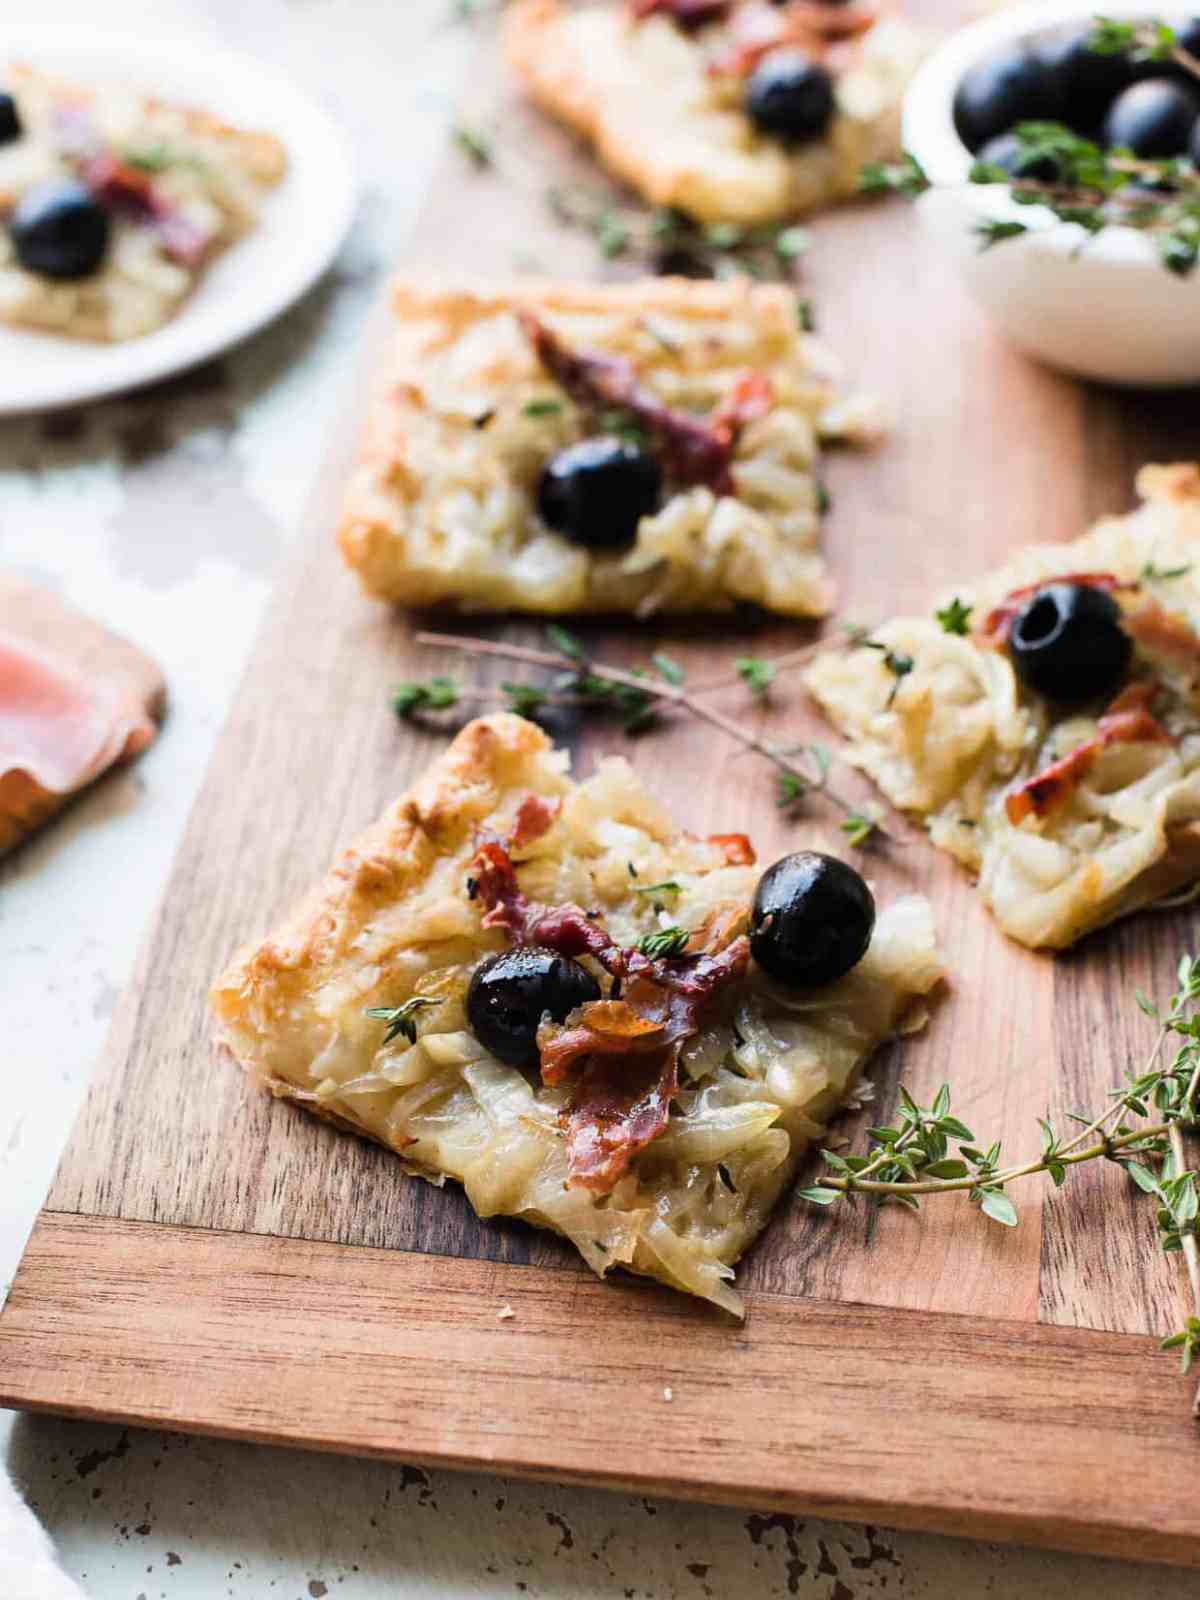 Slices of Pissaladière with Prosciutto on a wooden serving board.